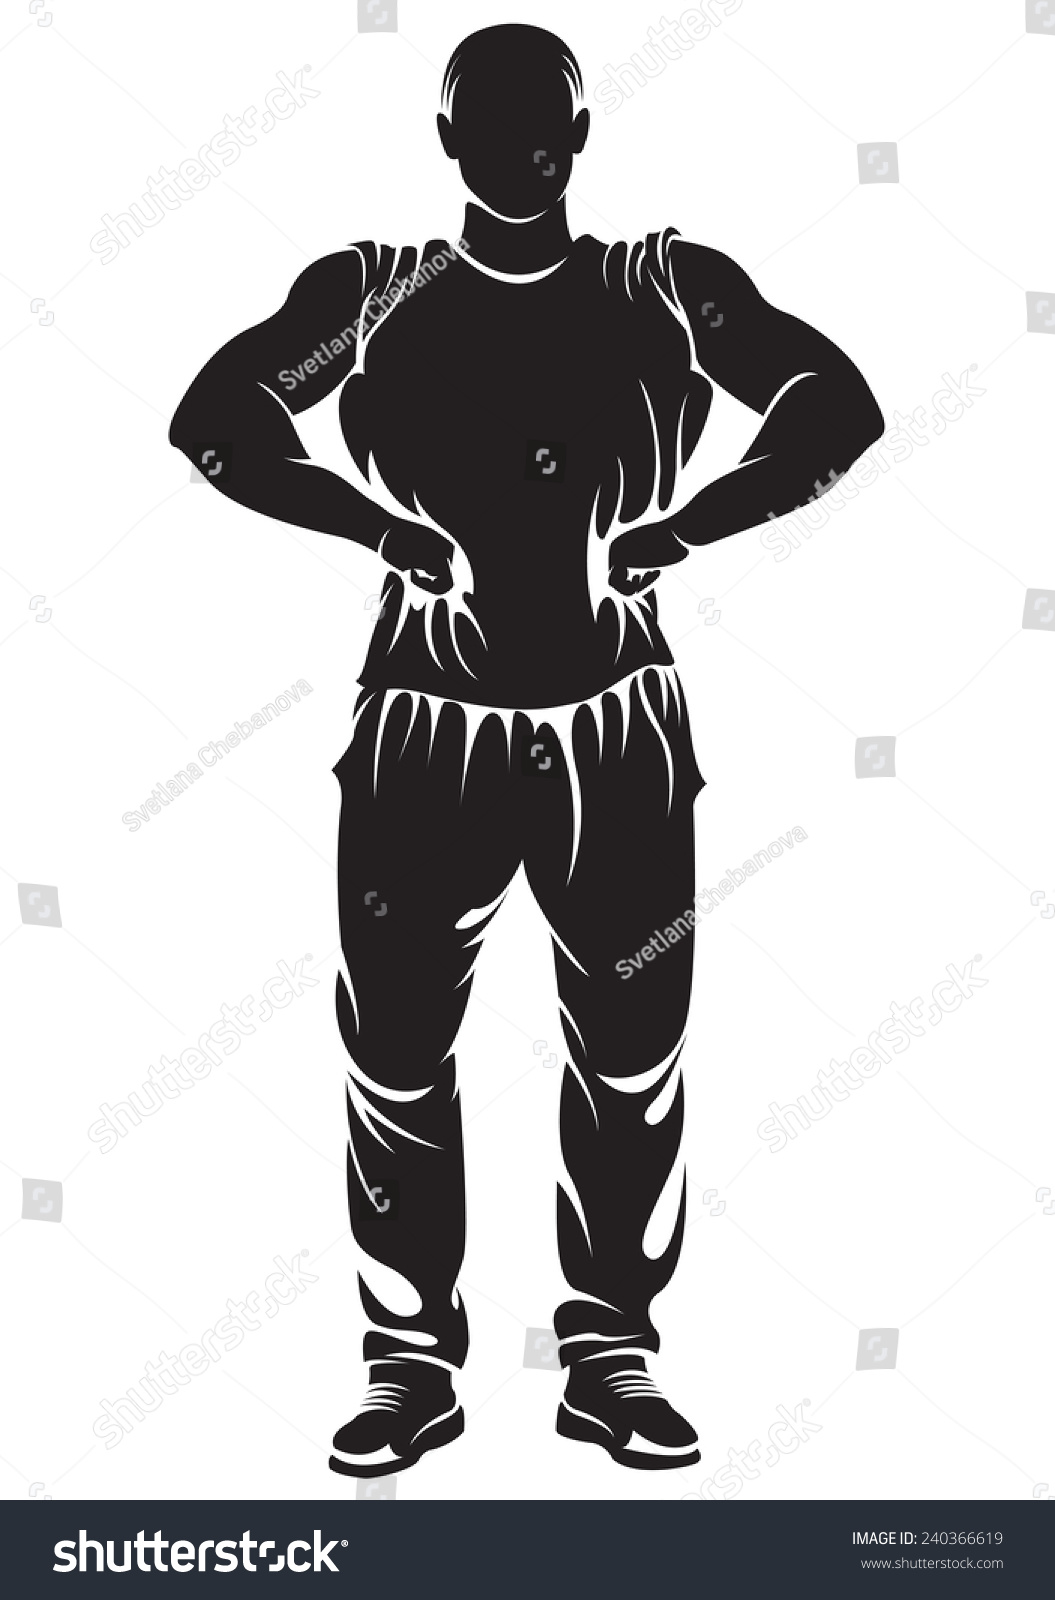 Vector image with bodybuilder silhouette